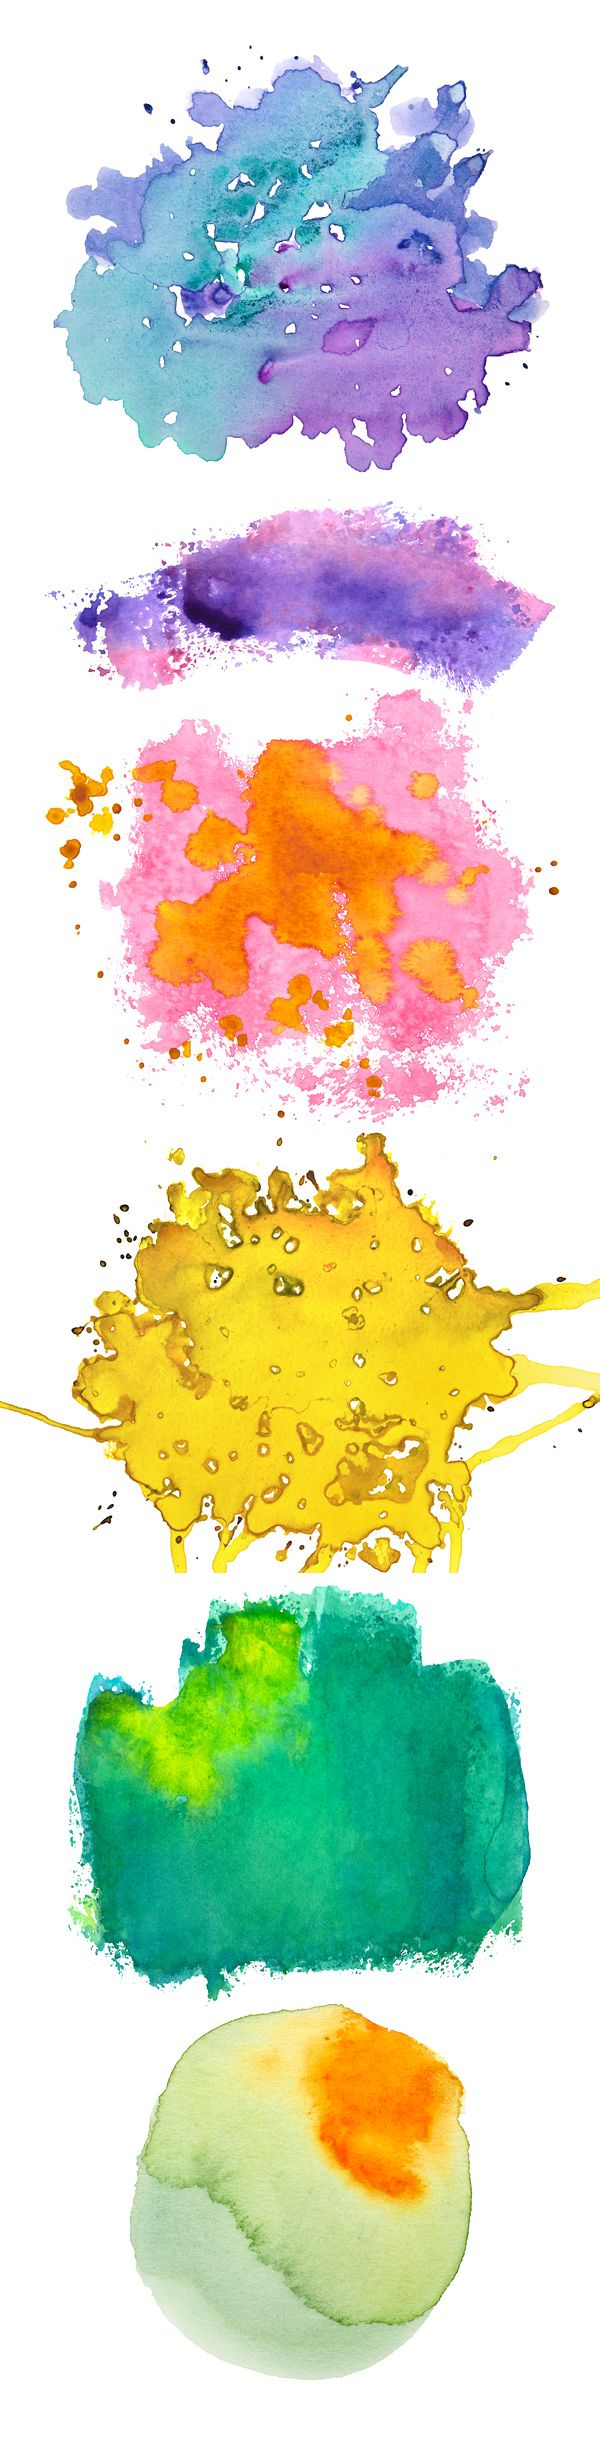 Free illustration watercolor pigment color free image - Let S Create Vibrant Designs With These Watercolor Free Textures This Is A Set Of 6